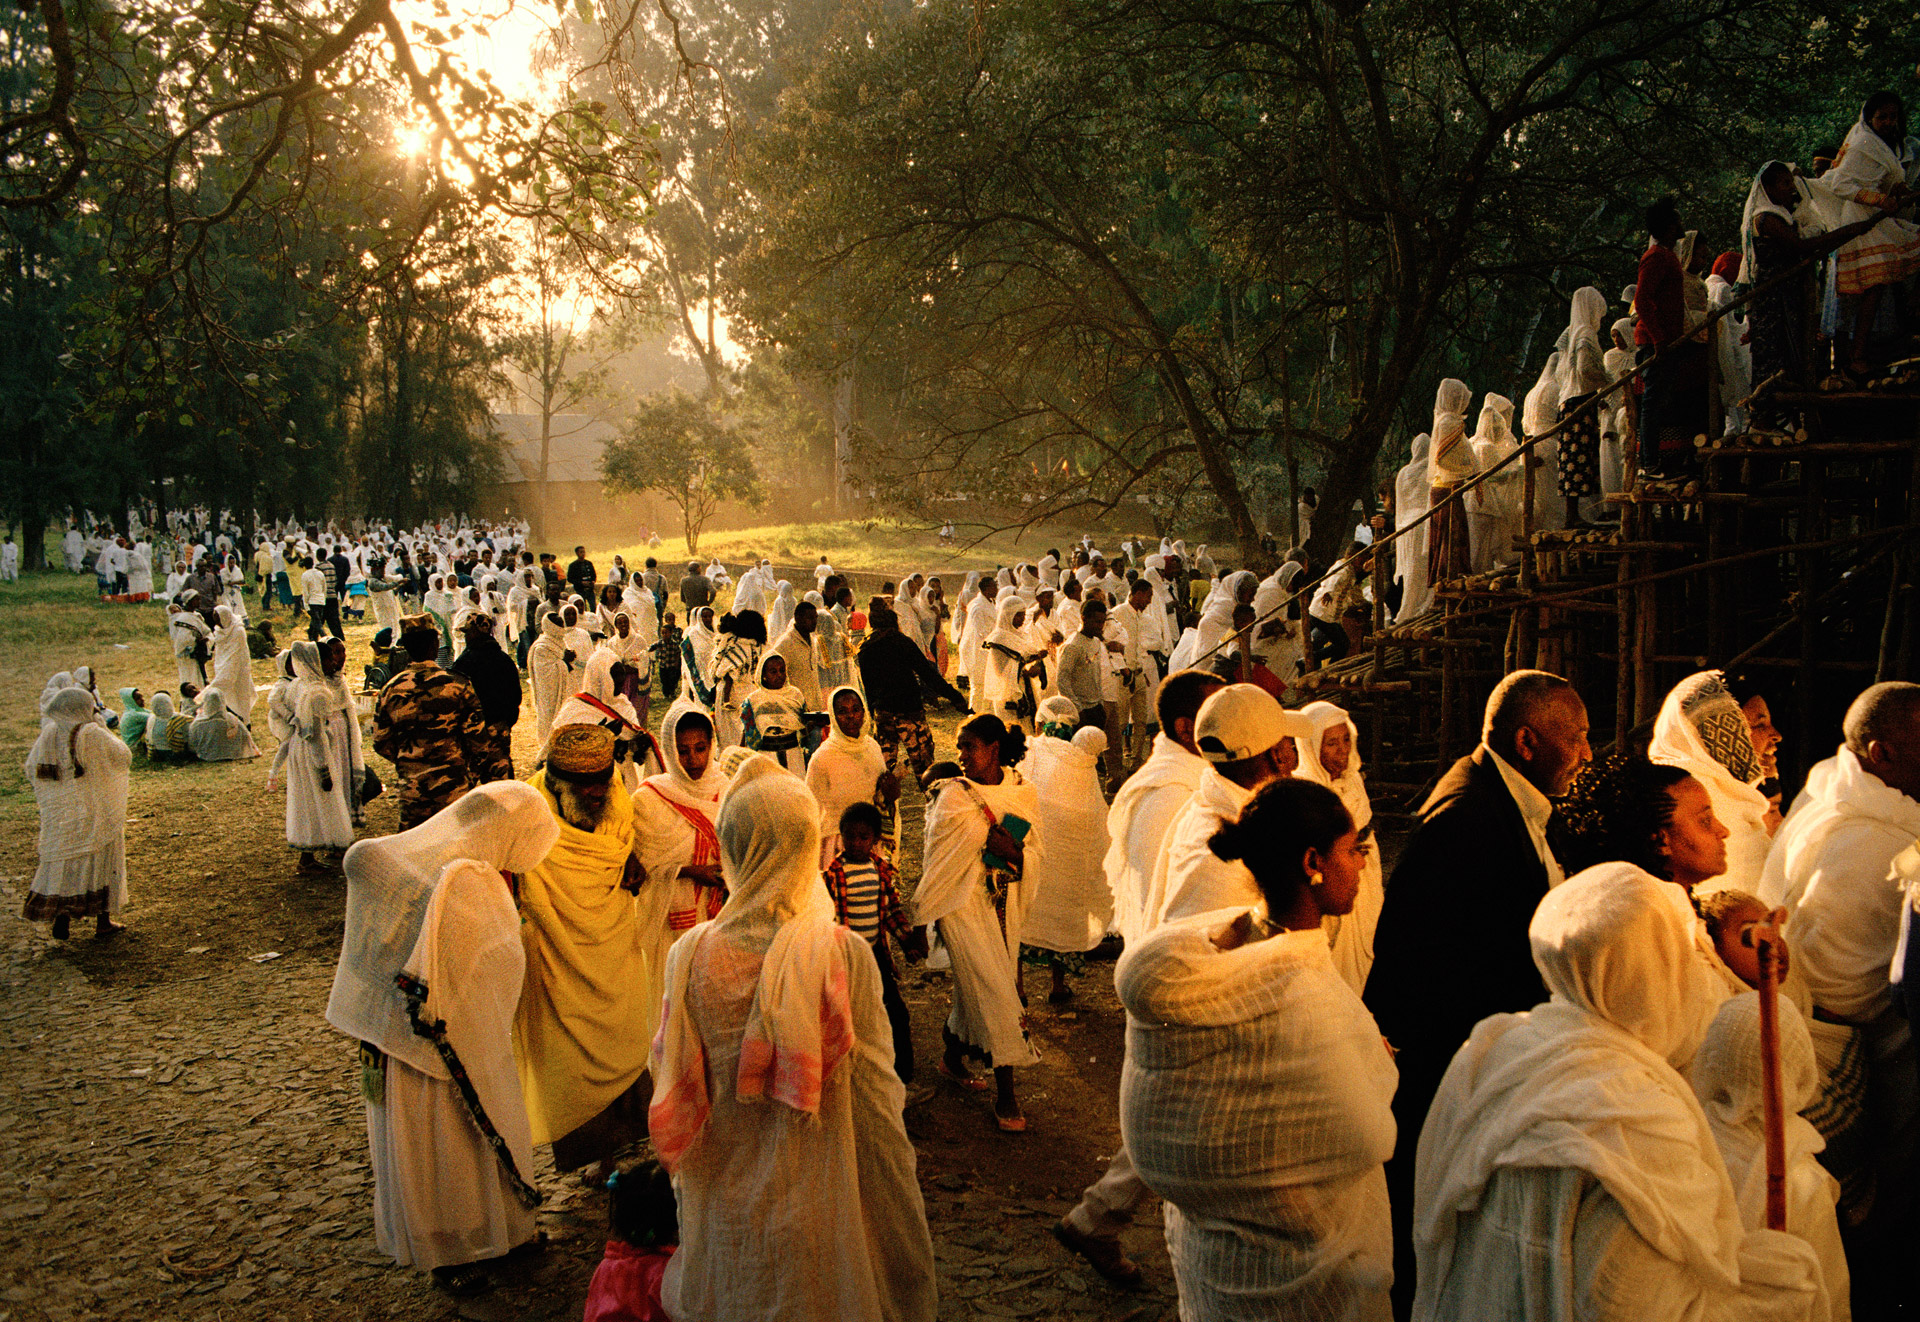 People coming to the Timkat religious Festival in Gondar Ethiopia